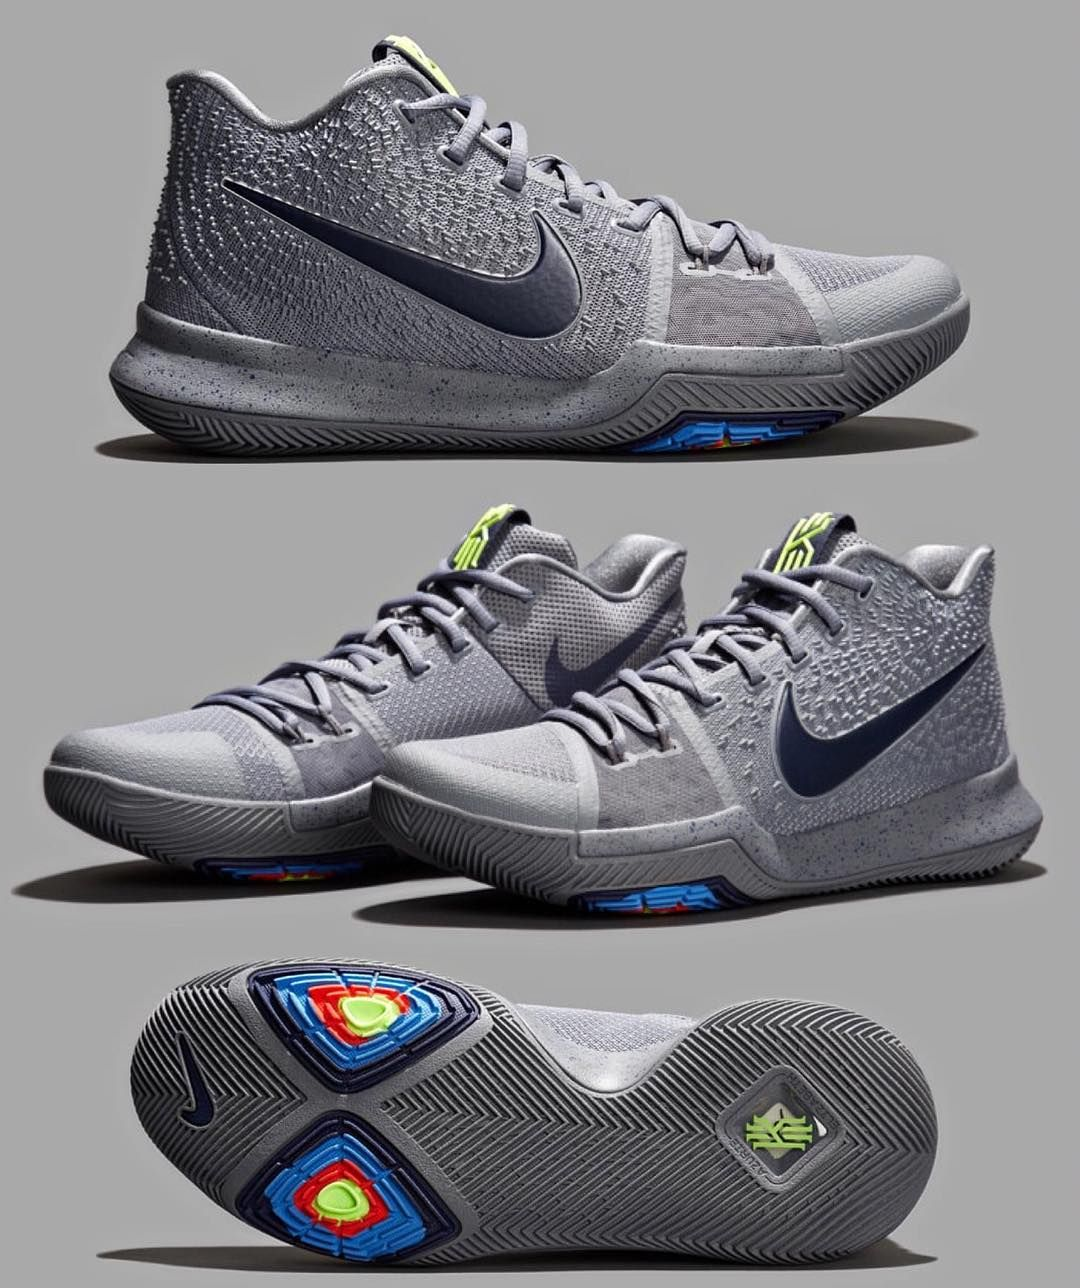 Cop or Drop  👟 Nike Kyrie 3